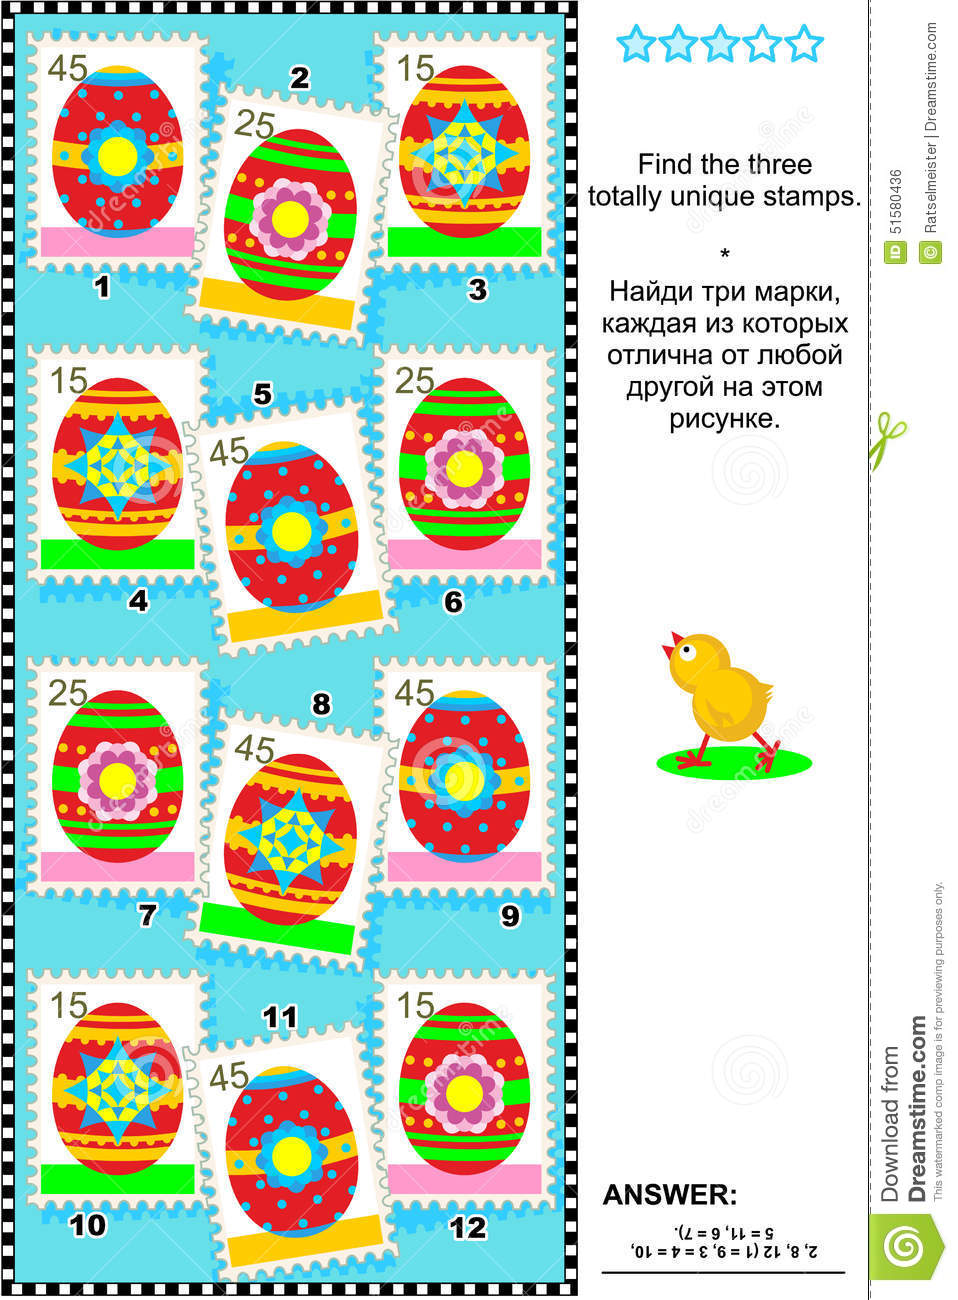 Easter Themed Visual Logic Puzzle With Stamps Stock Vector